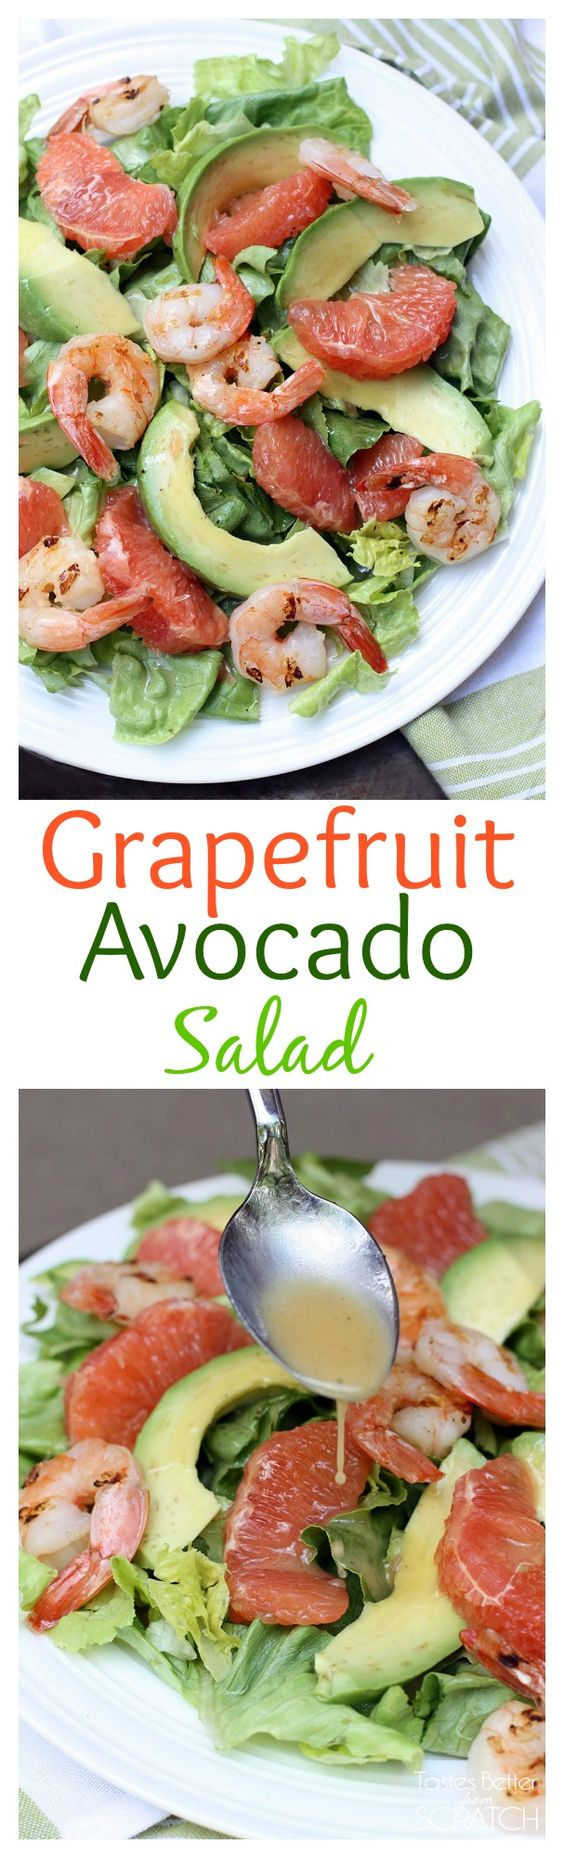 My favorite fresh and healthy salad! Grapefruit Avocado Salad with ...